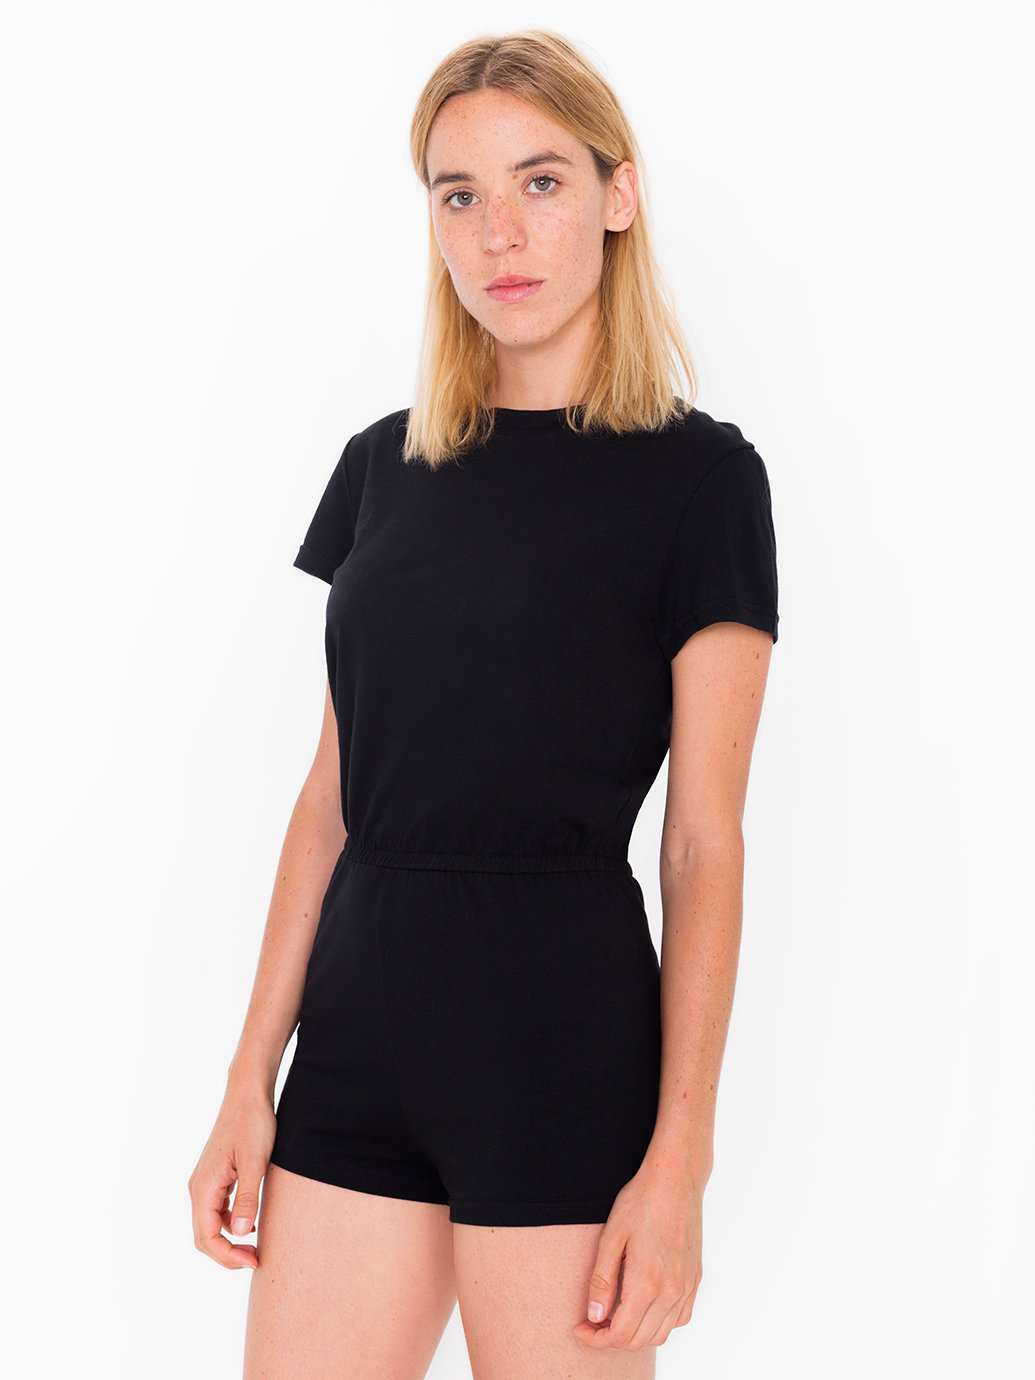 Black dress romper - Jersey T Shirt Romper American Apparel